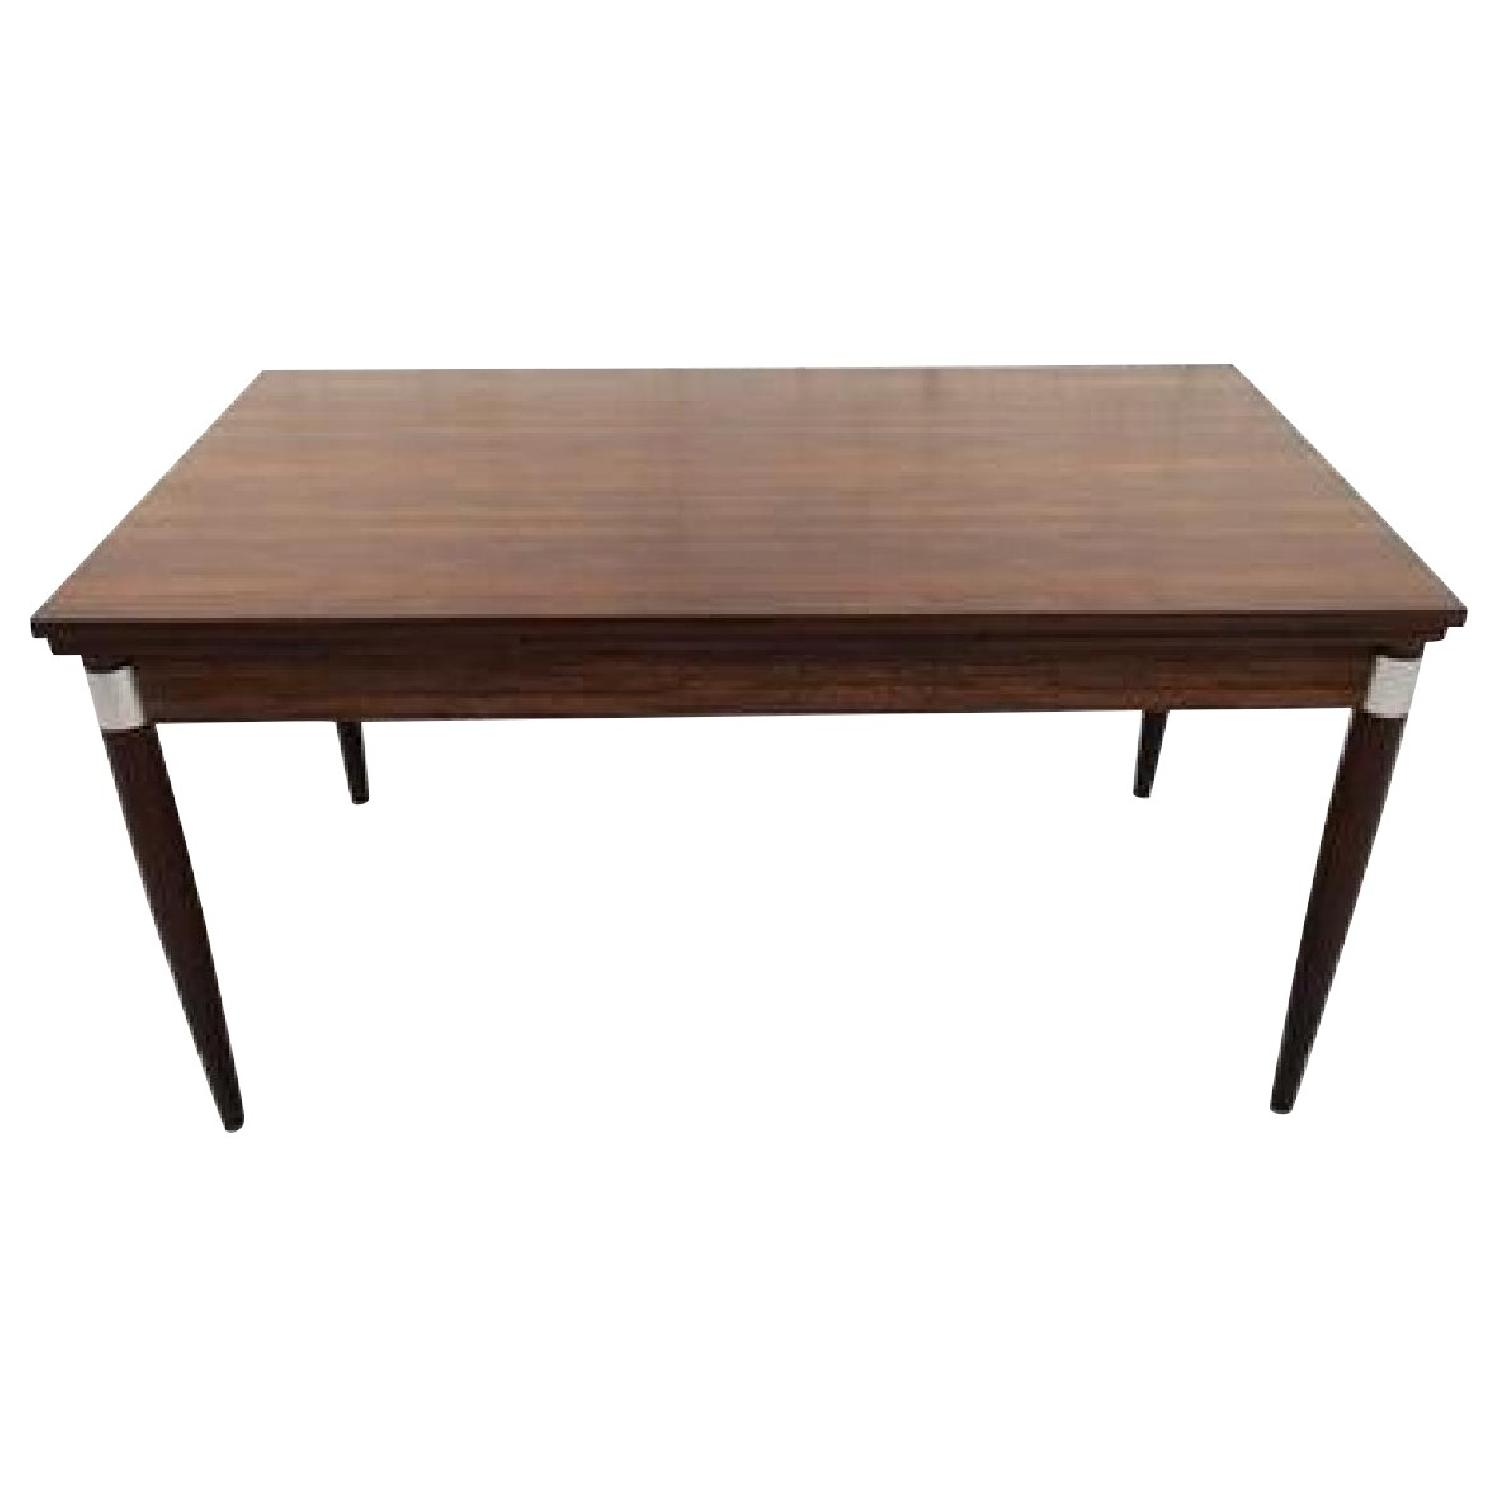 Mid-Century Modern Design Extendable Draw Leaf Dining Table - image-0